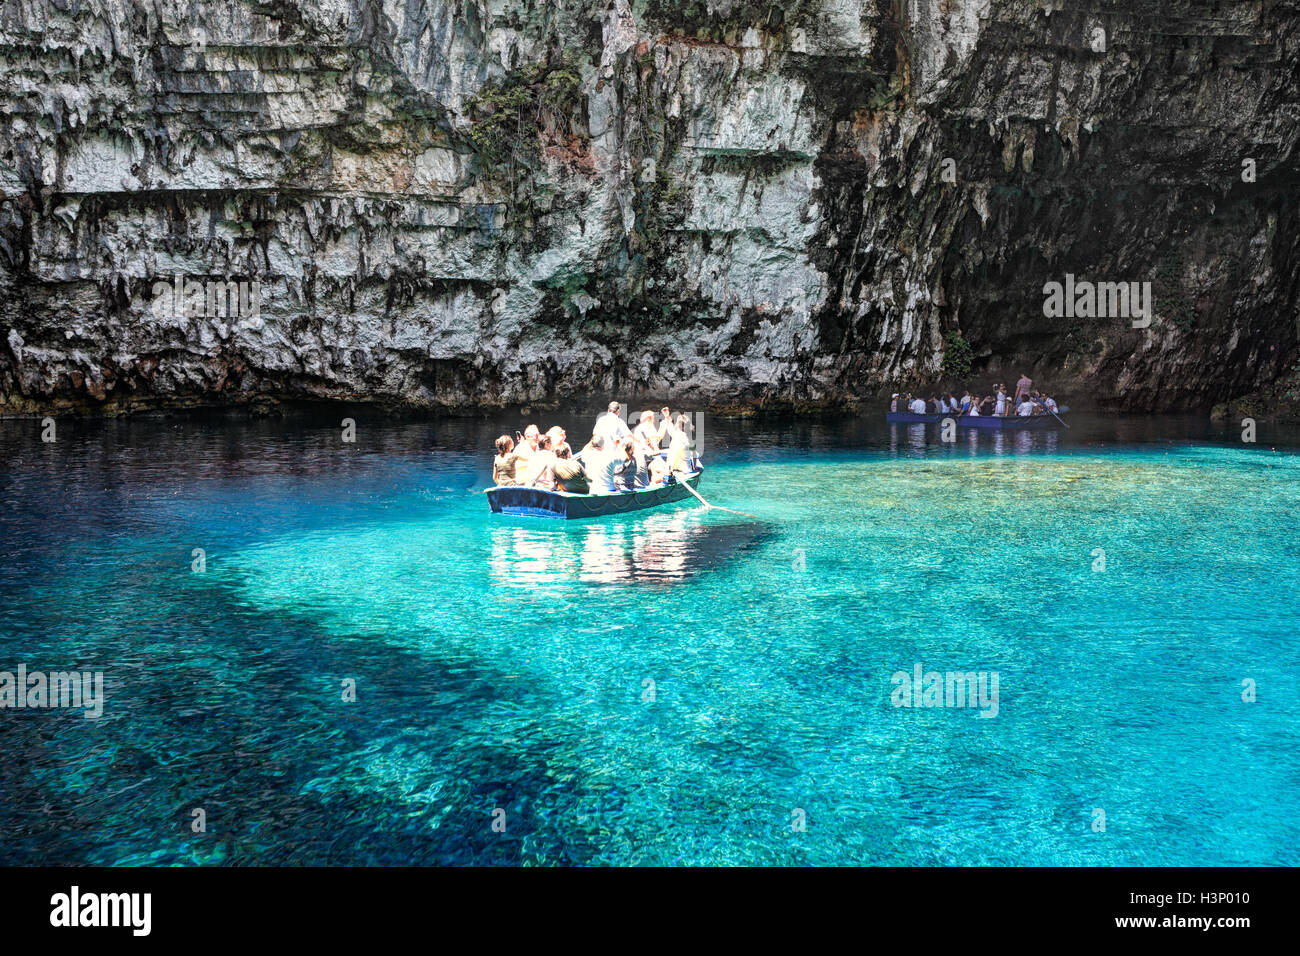 The tour in the cave of Melissani lake in Kefalonia island, Greece - Stock Image